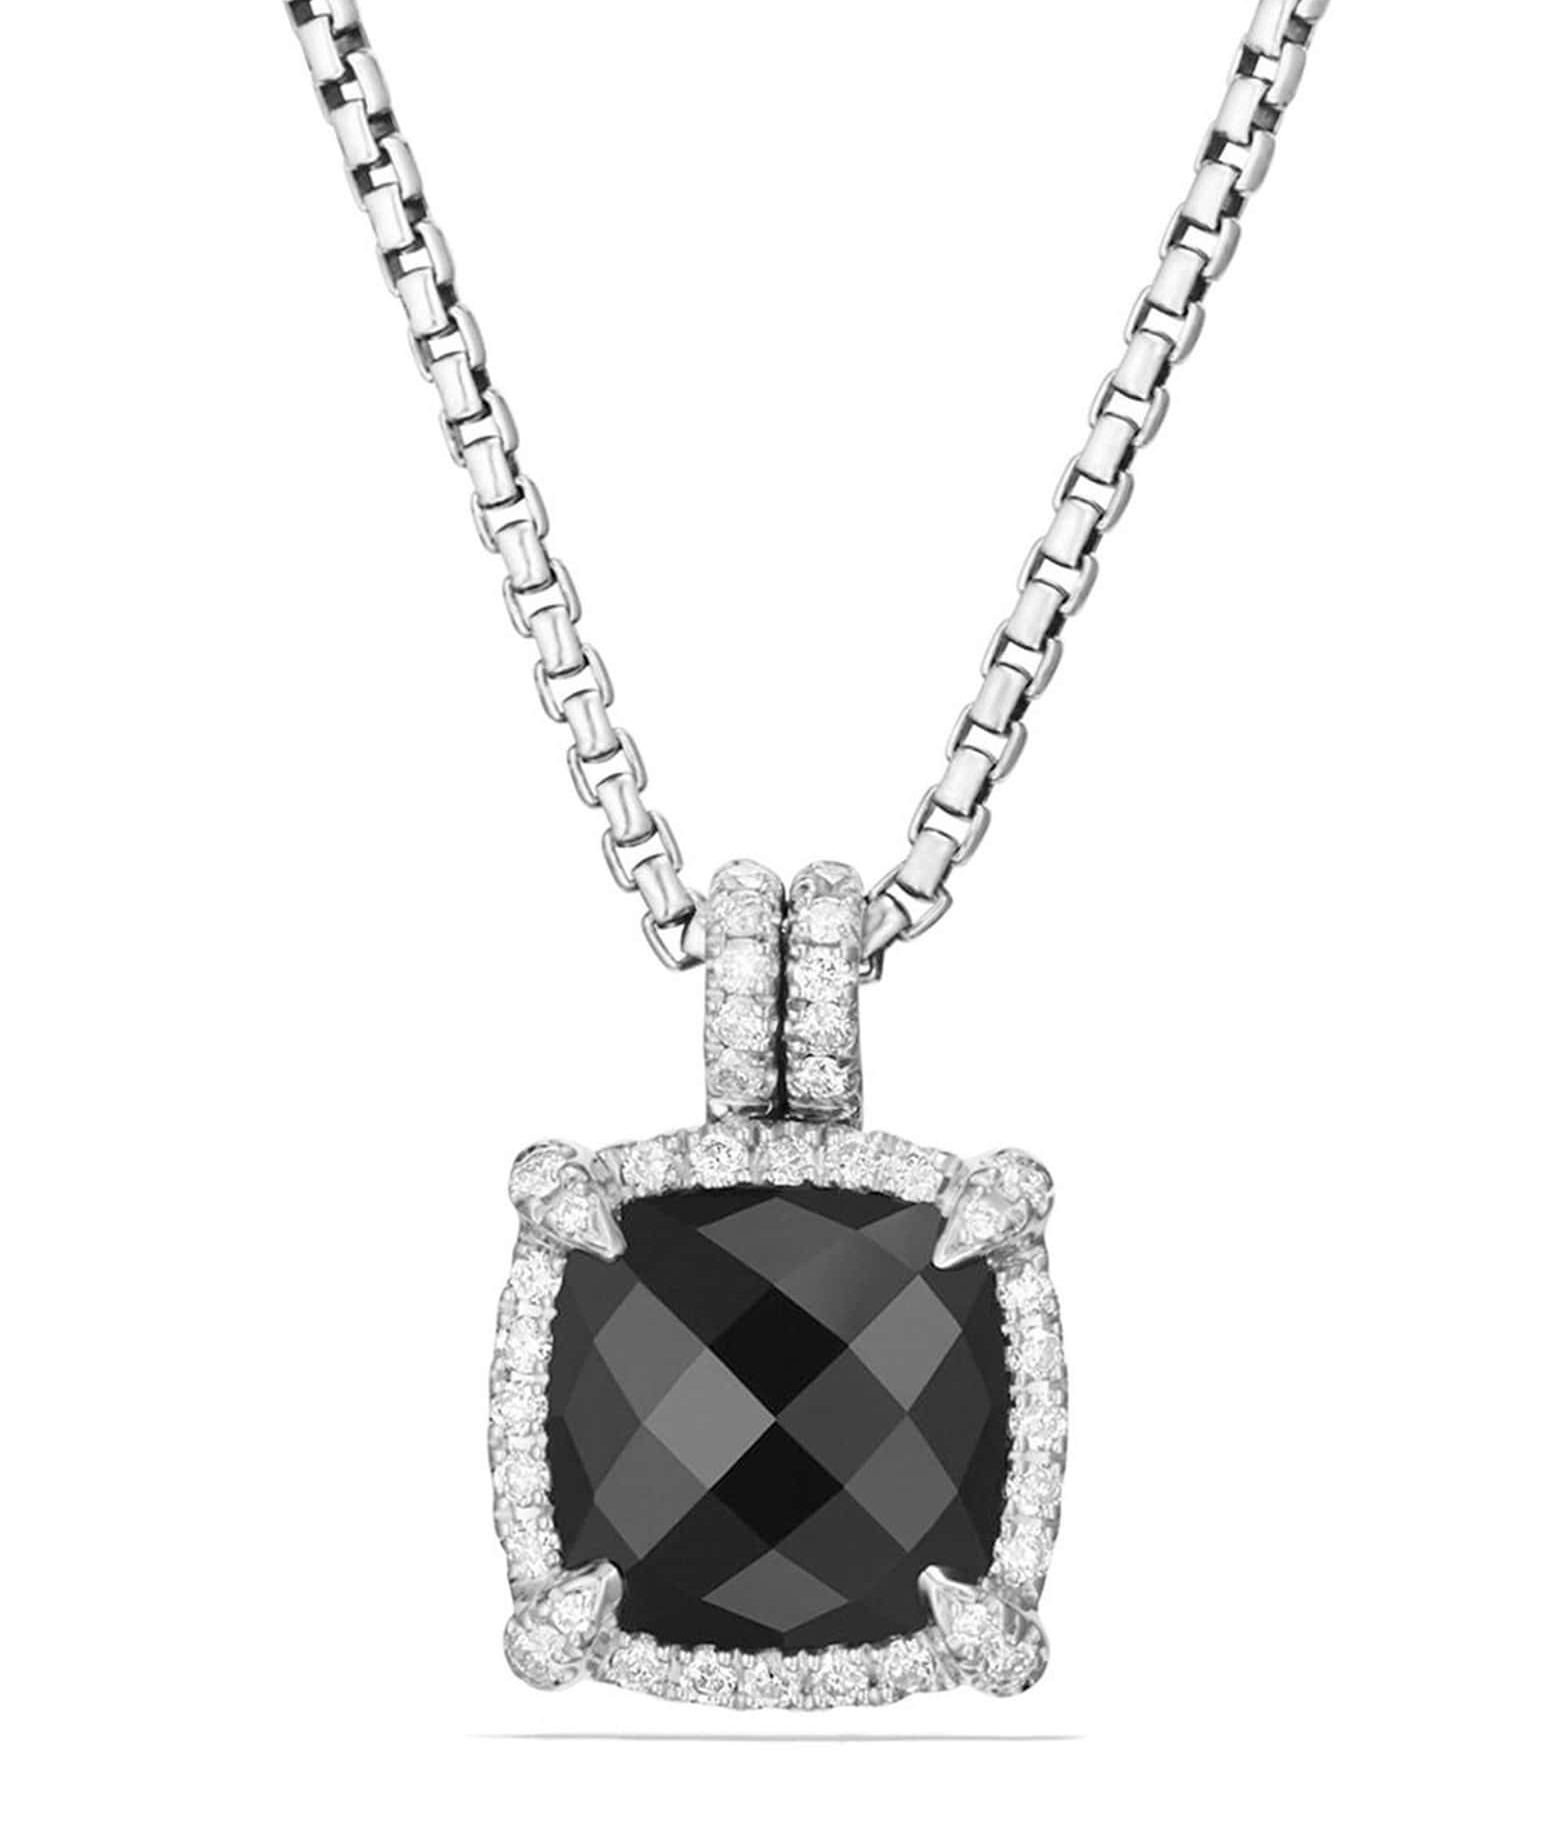 david yurman black necklace.jpg